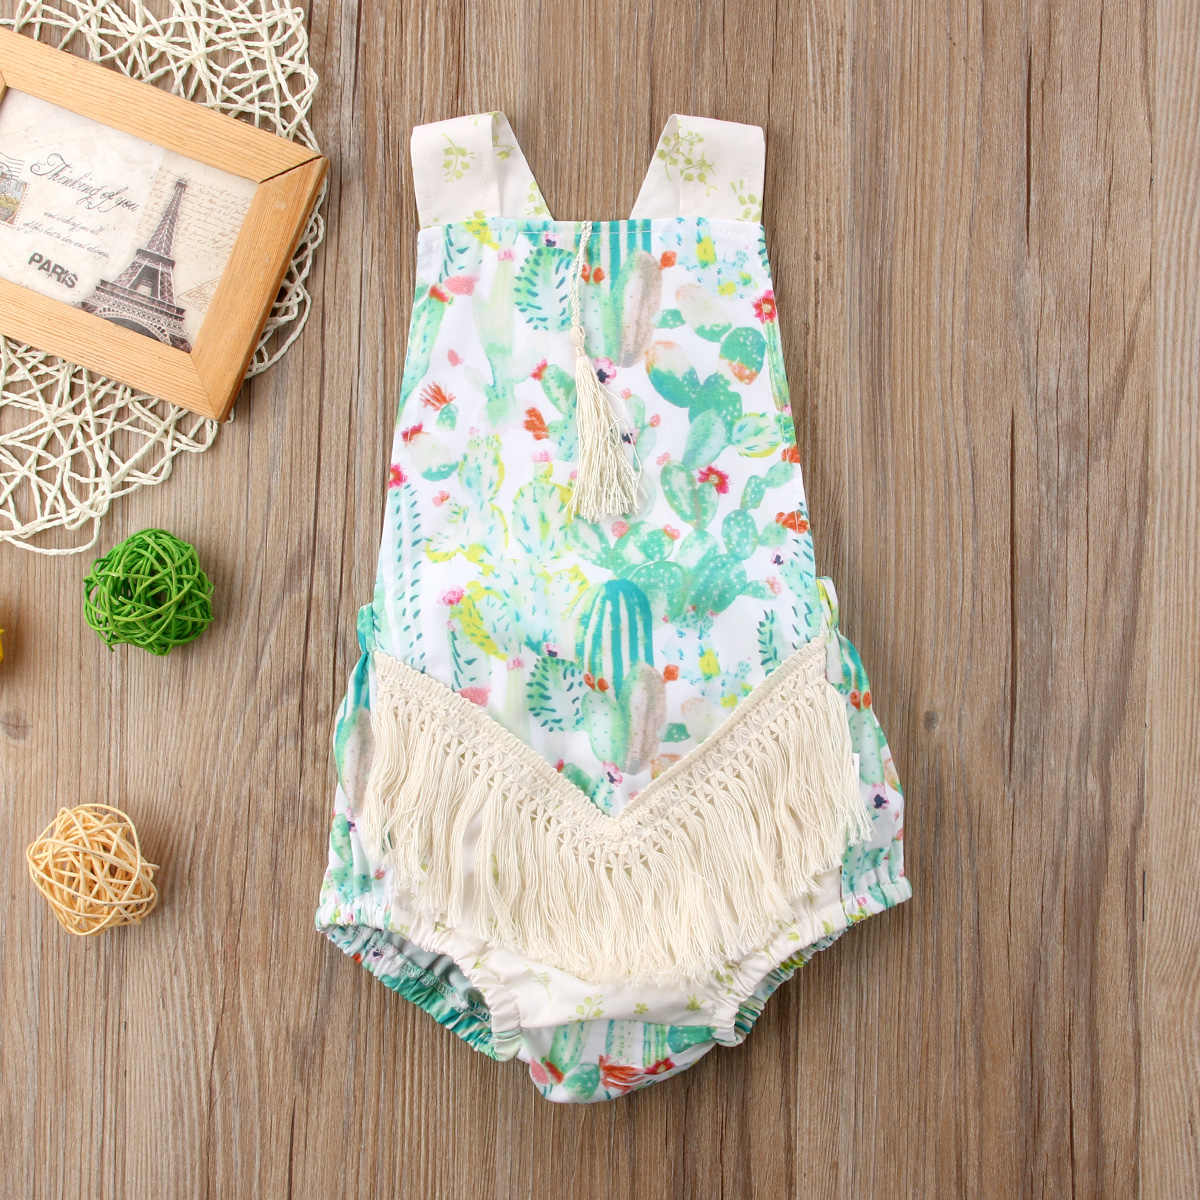 6bf24e9f3cb ... Newborn Infant Baby Girl Cactus Backless Romper Tassel Jumpsuit Outfit  Clothes Baby Clothing ...